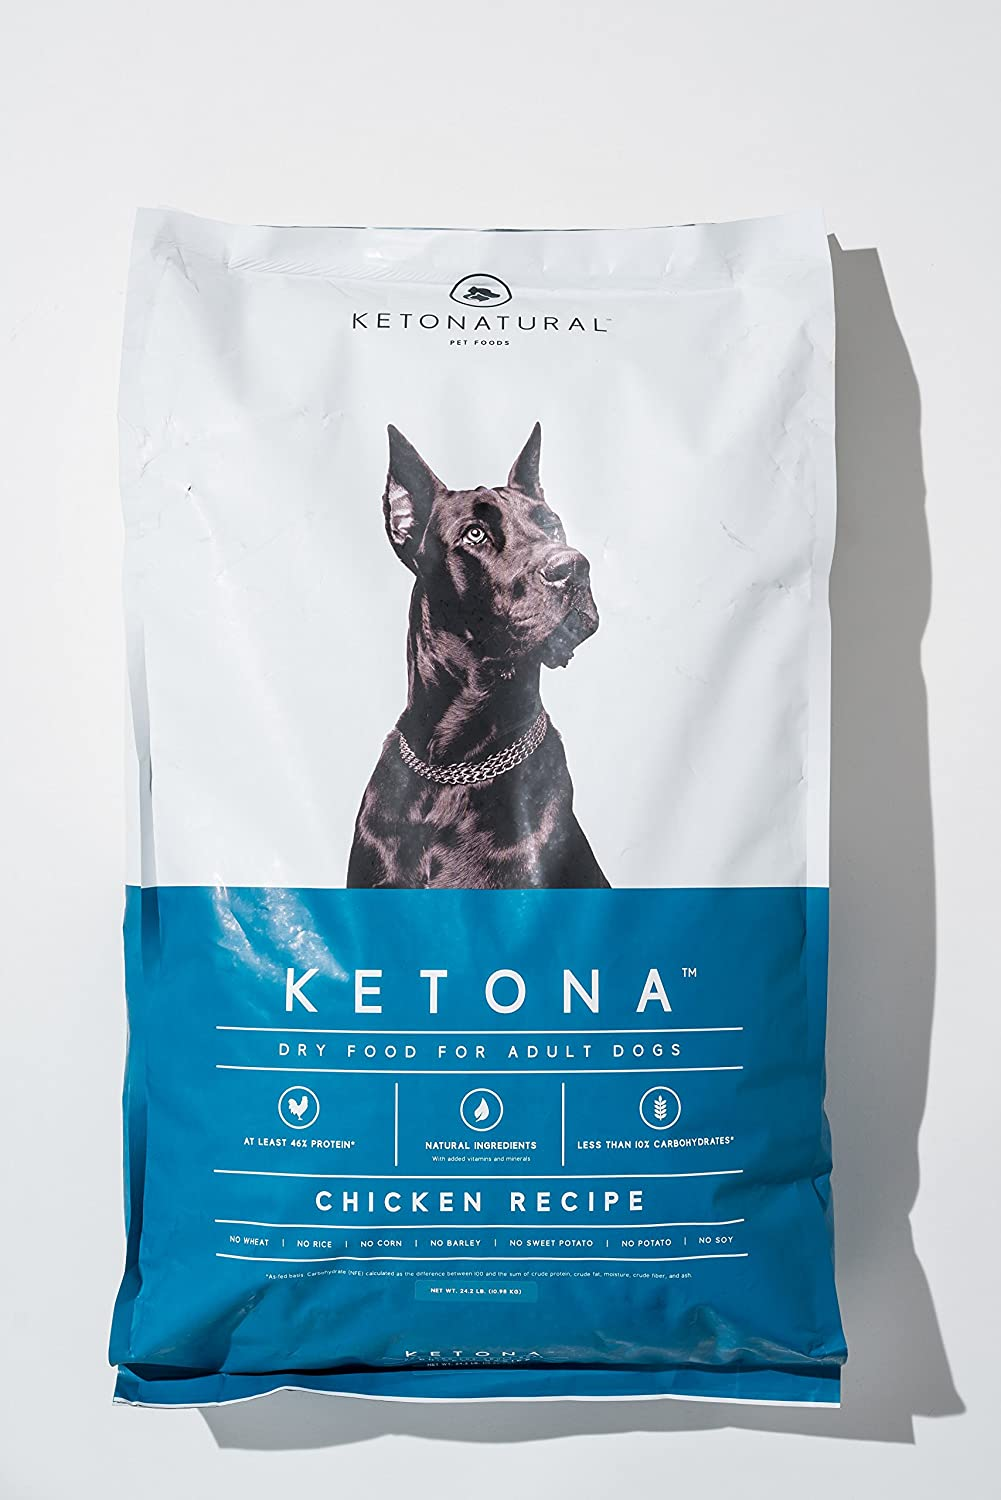 Ketona Chicken Recipe Dry Food for Adult Dogs - Low Carb, High Protein, Grain-Free Dog Food